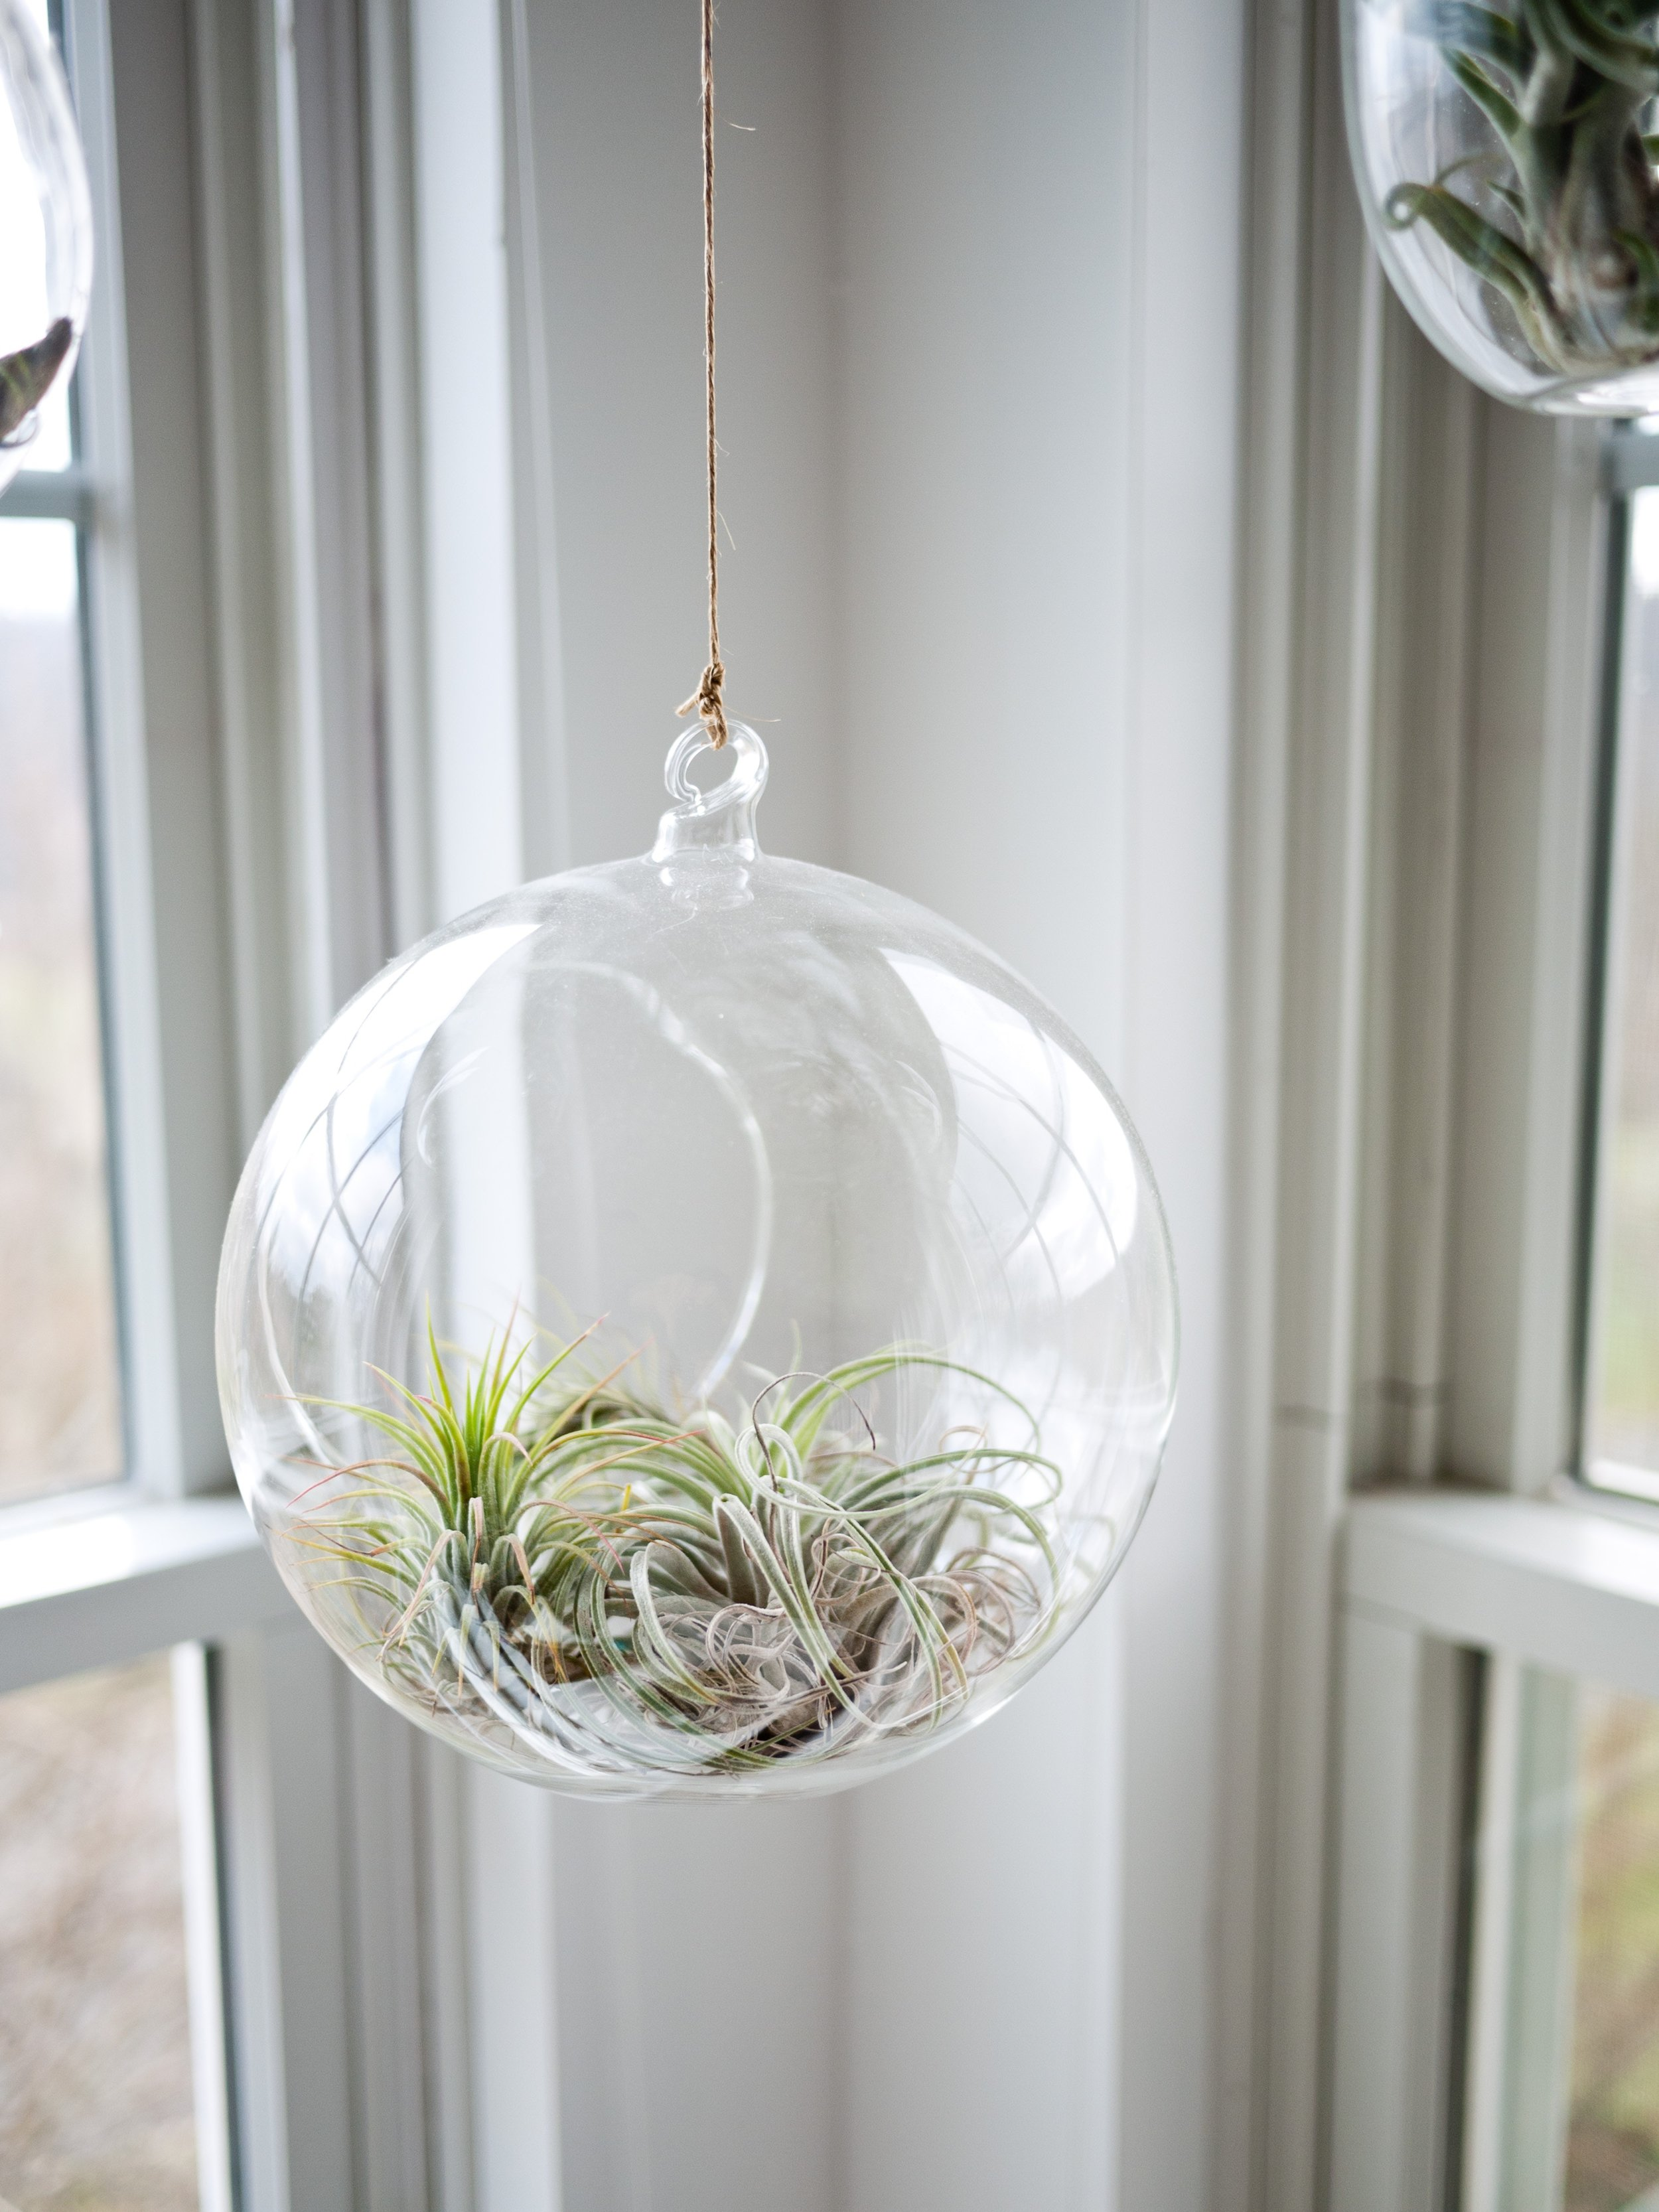 The 10 Essential House Plants - Air Plant